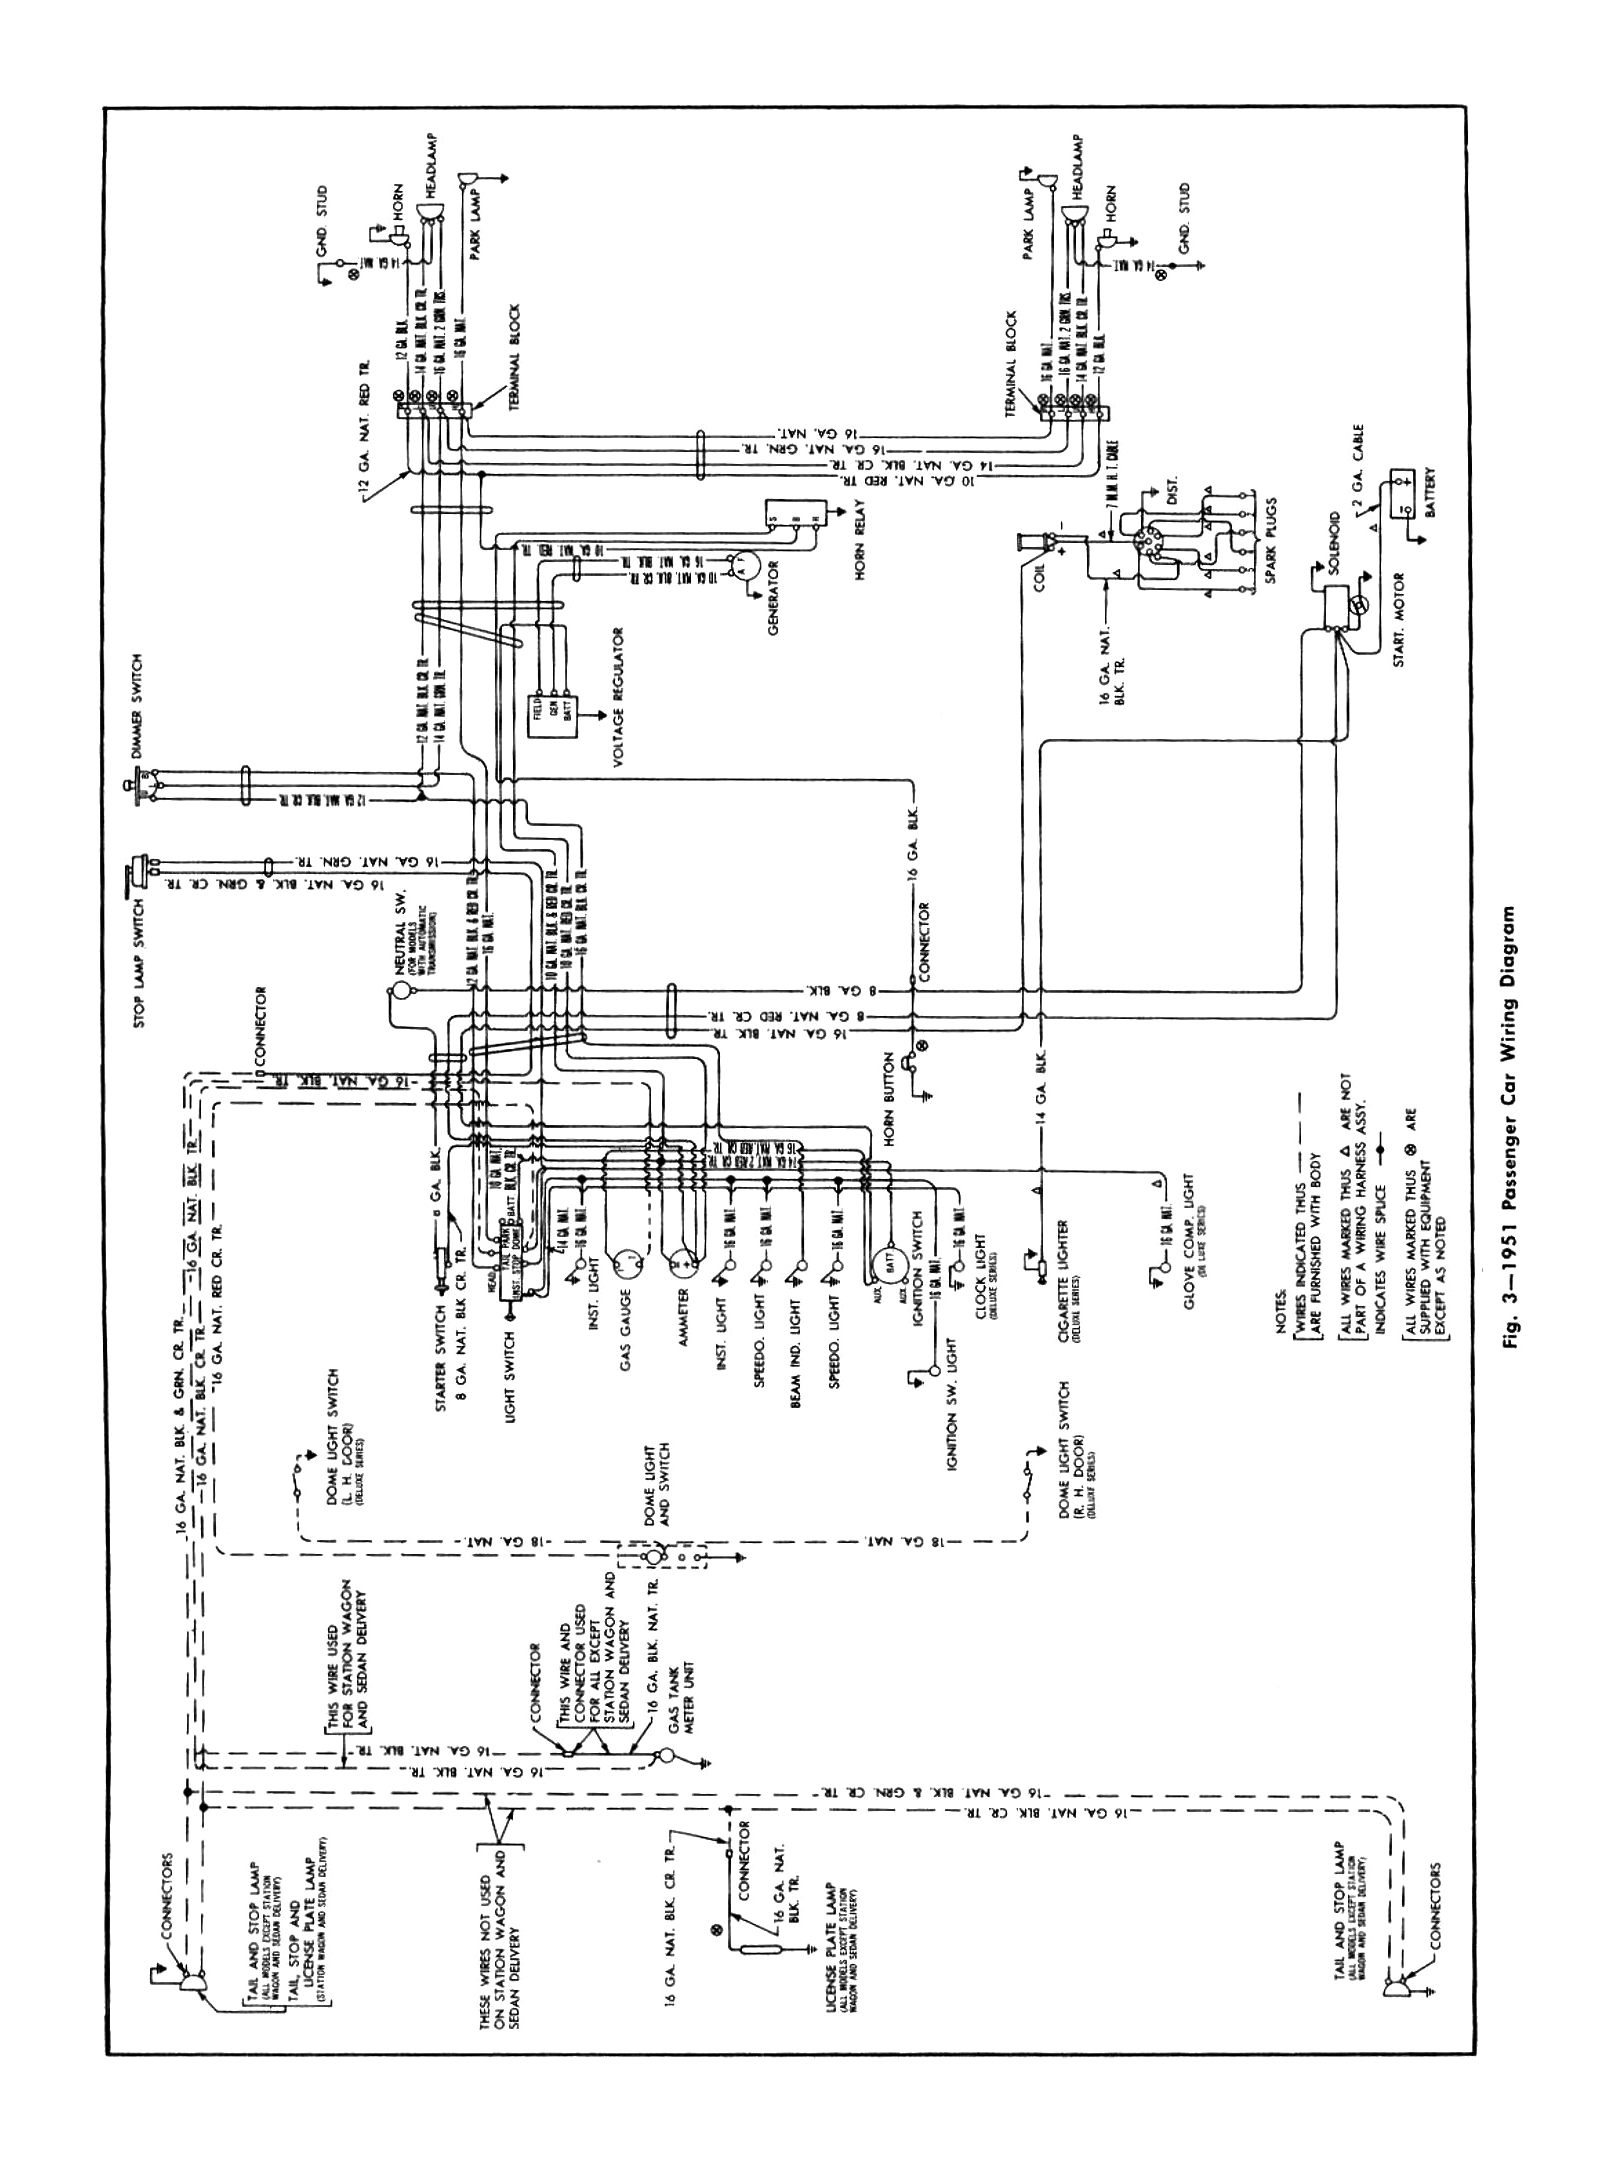 51car wiring loom diagram 1 2wire loom \u2022 wiring diagrams j squared co ez wiring harness diagram at mifinder.co